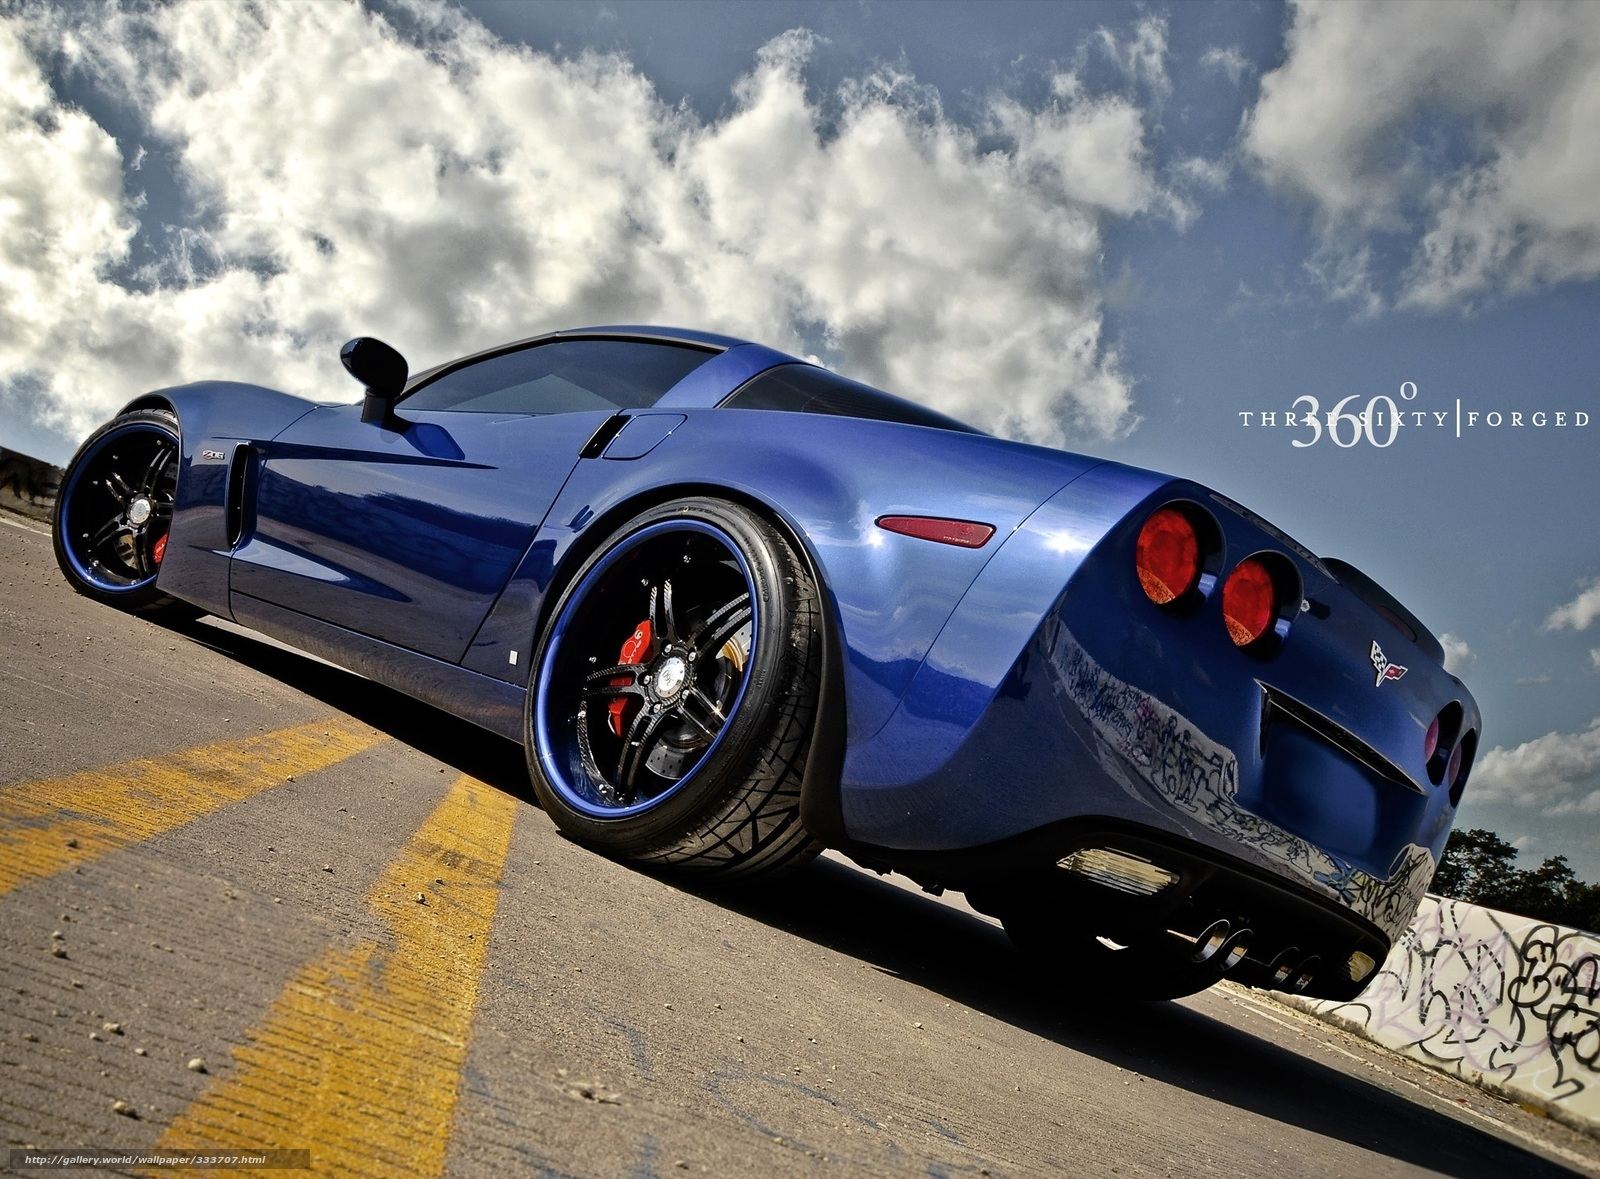 Download wallpaper chevrolet corvette blue chevrolet free desktop wallpaper in the resolution 2048x1509 picture 333707